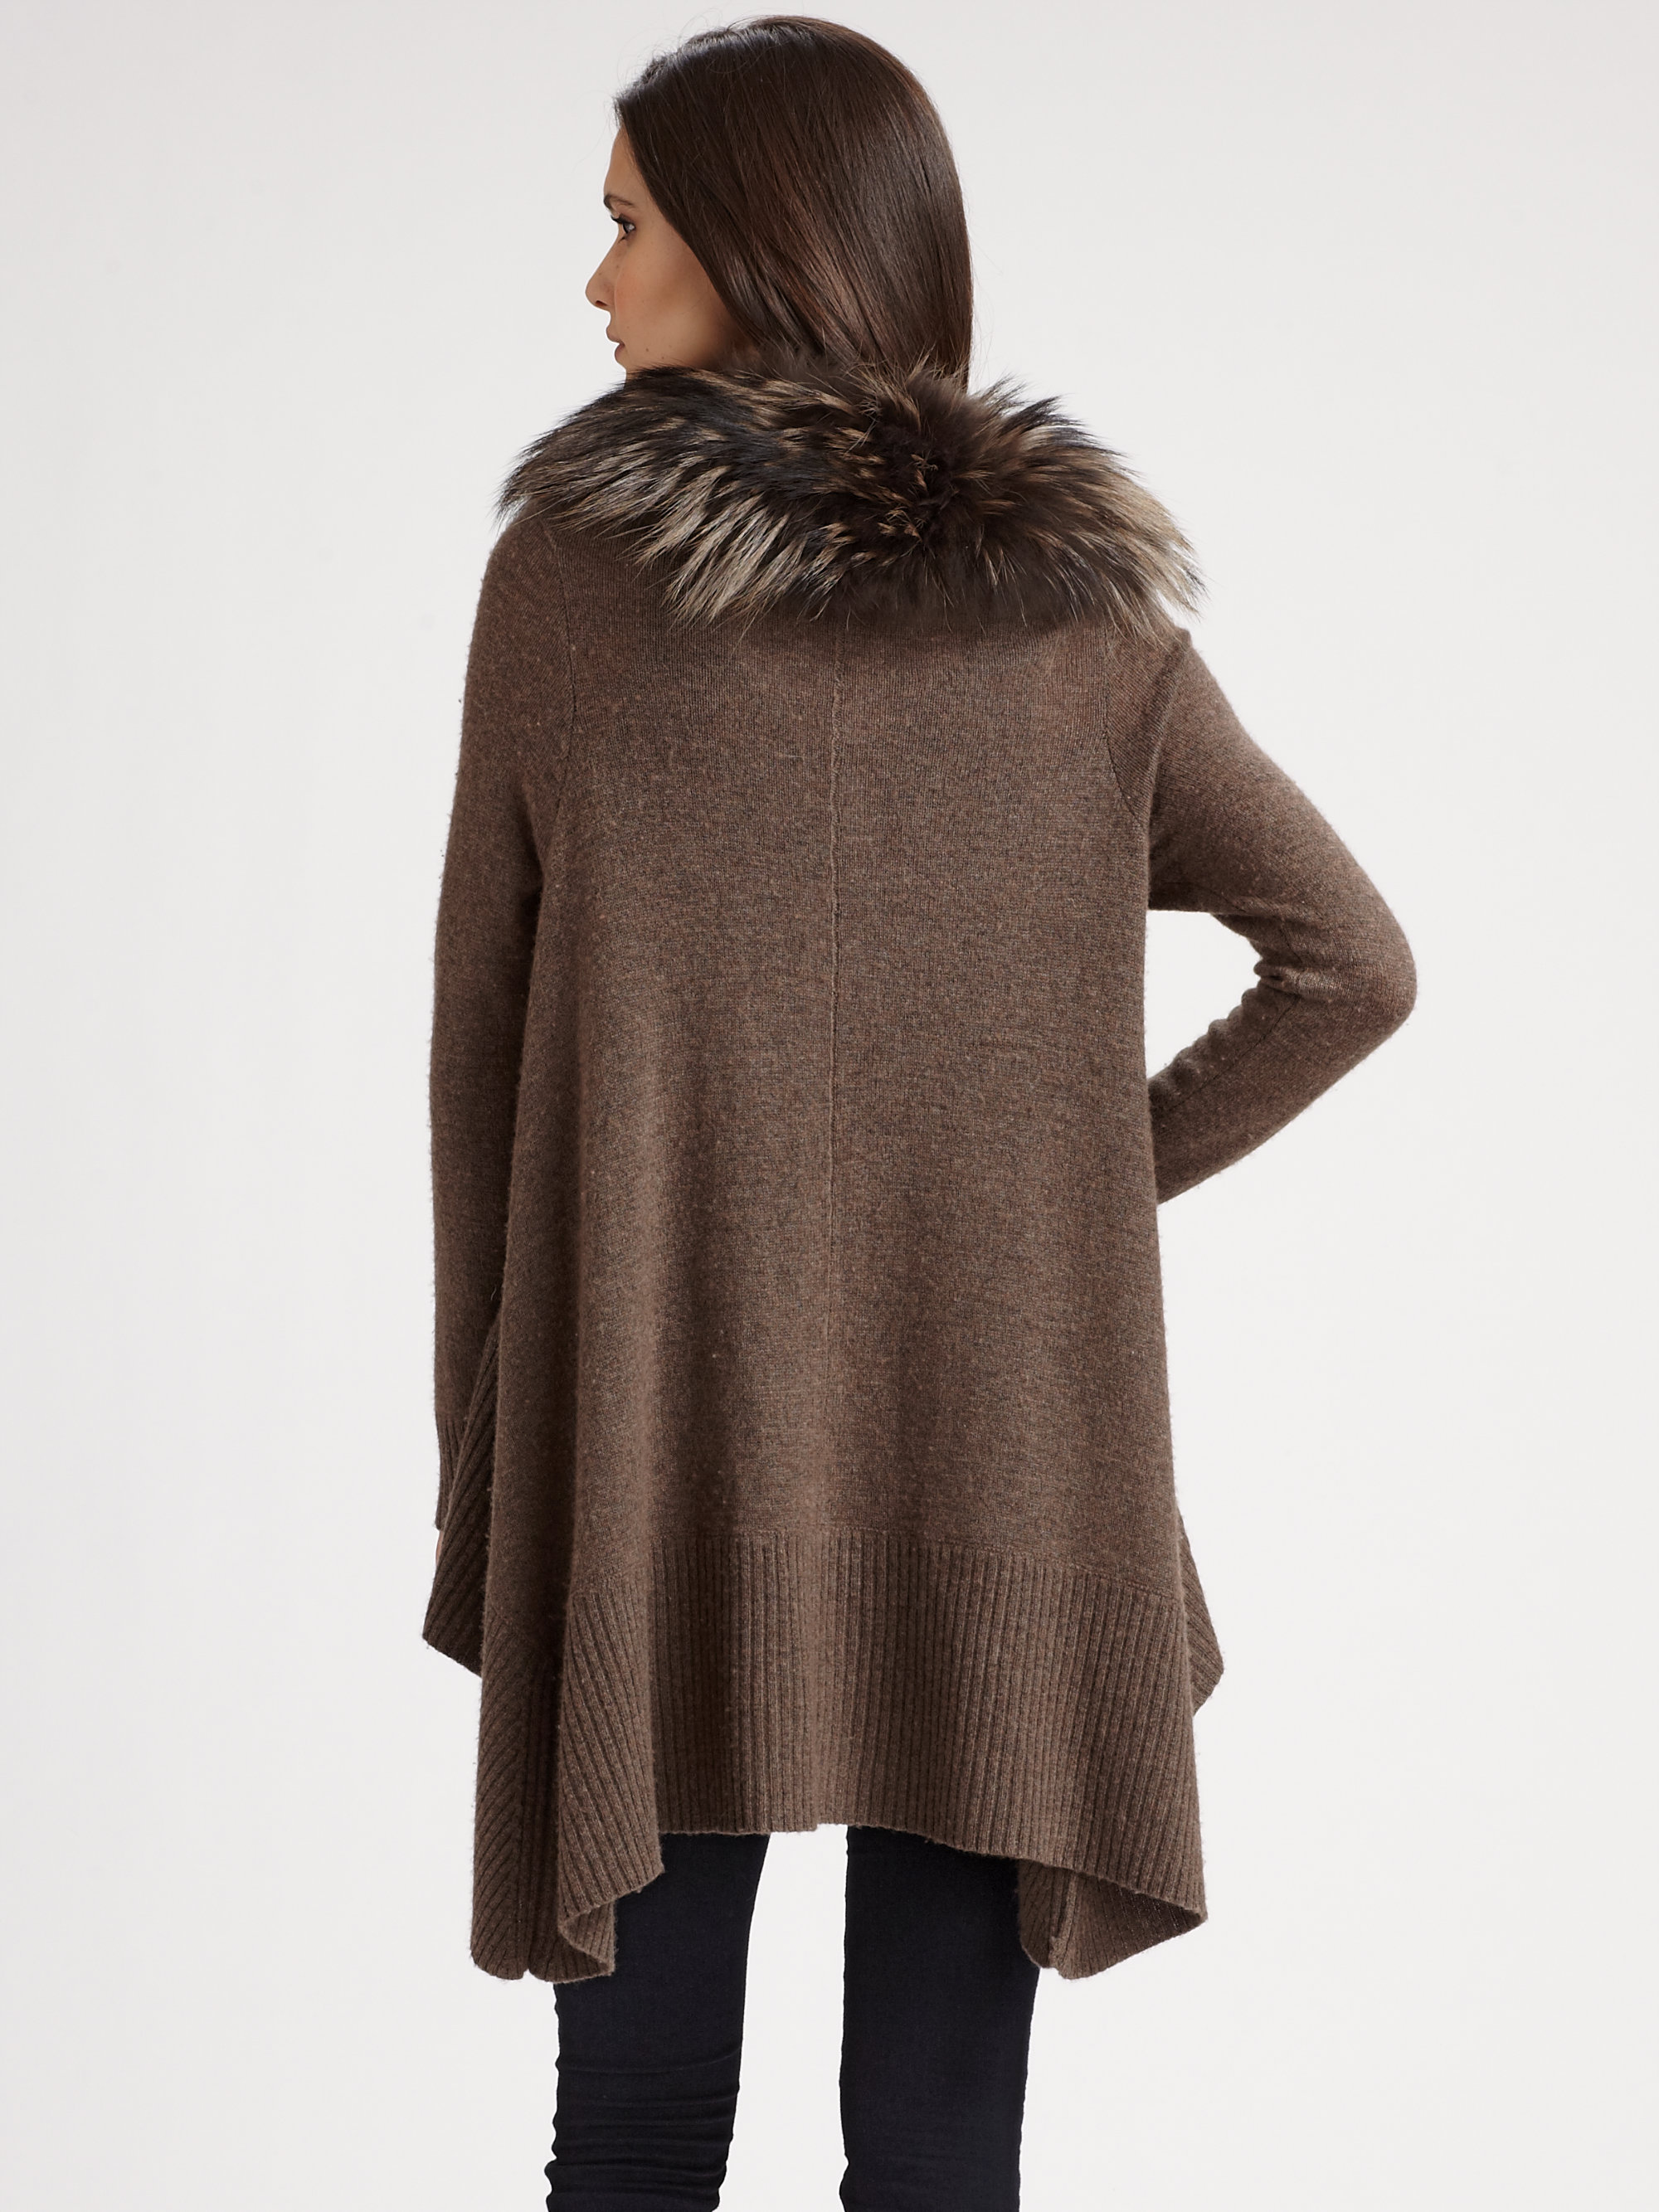 Alice   olivia Fur Trim Cascade Cardigan in Brown | Lyst